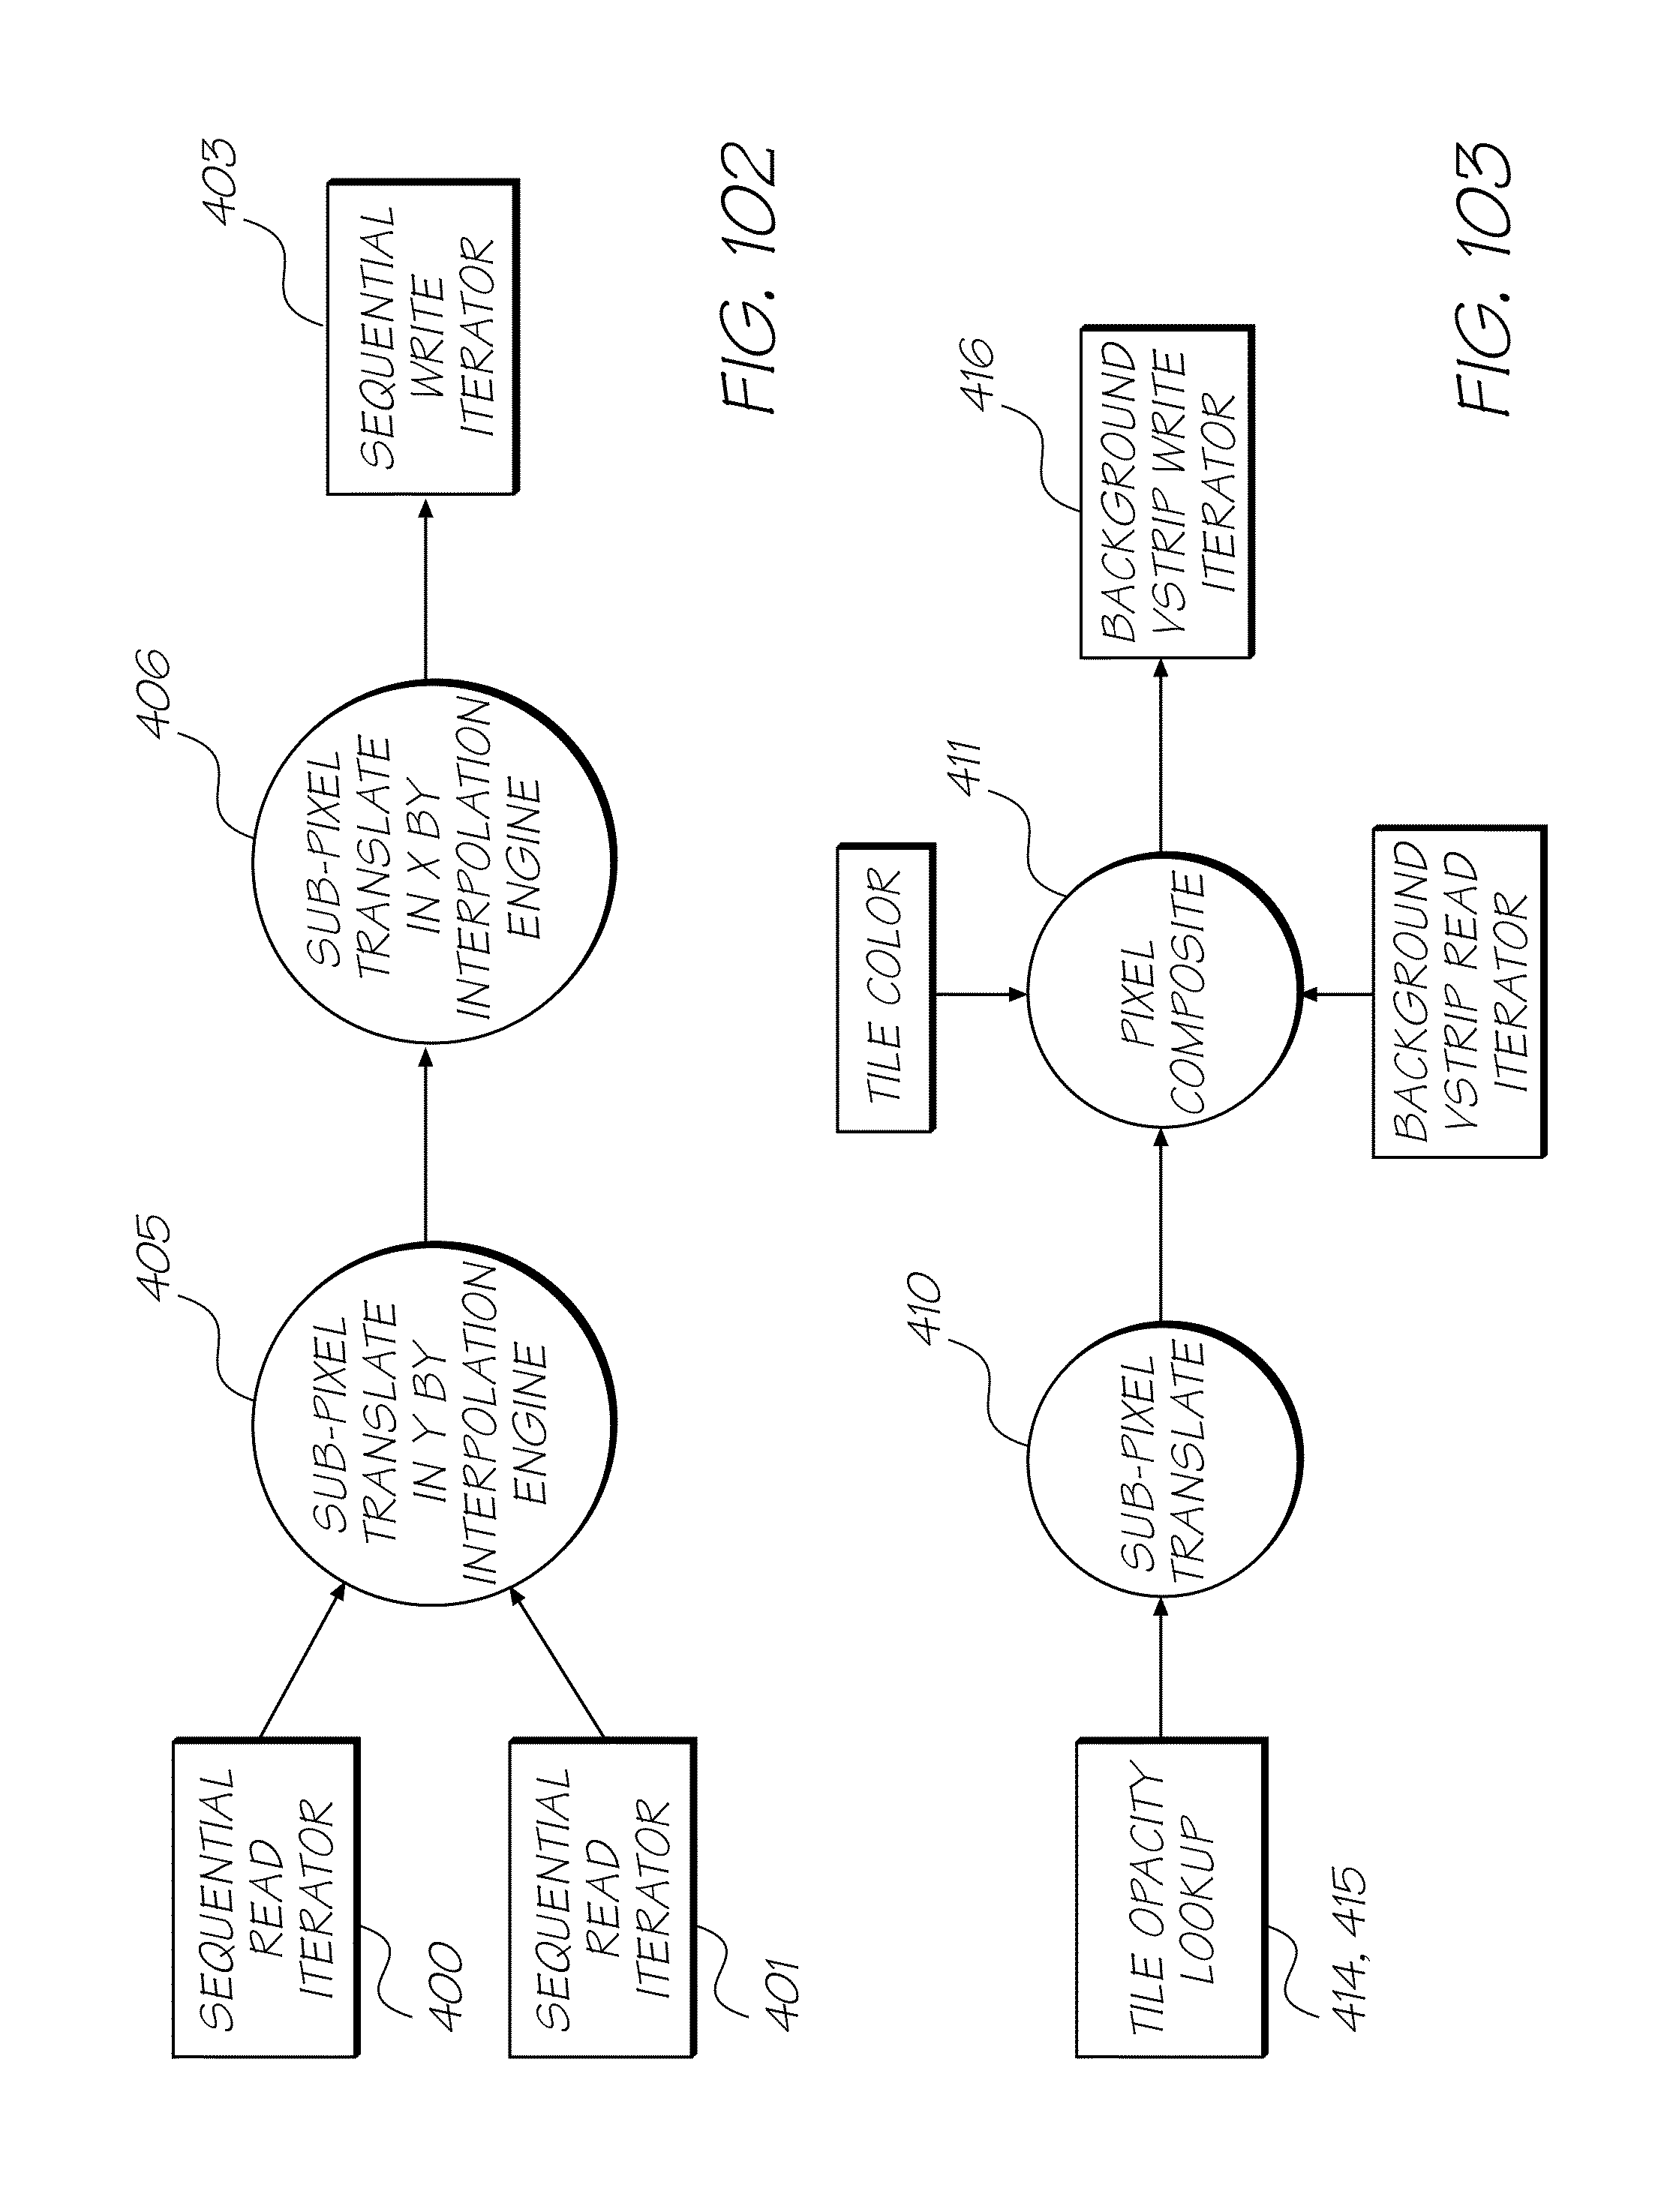 US8902324B2 - Quad-core image processor for device with